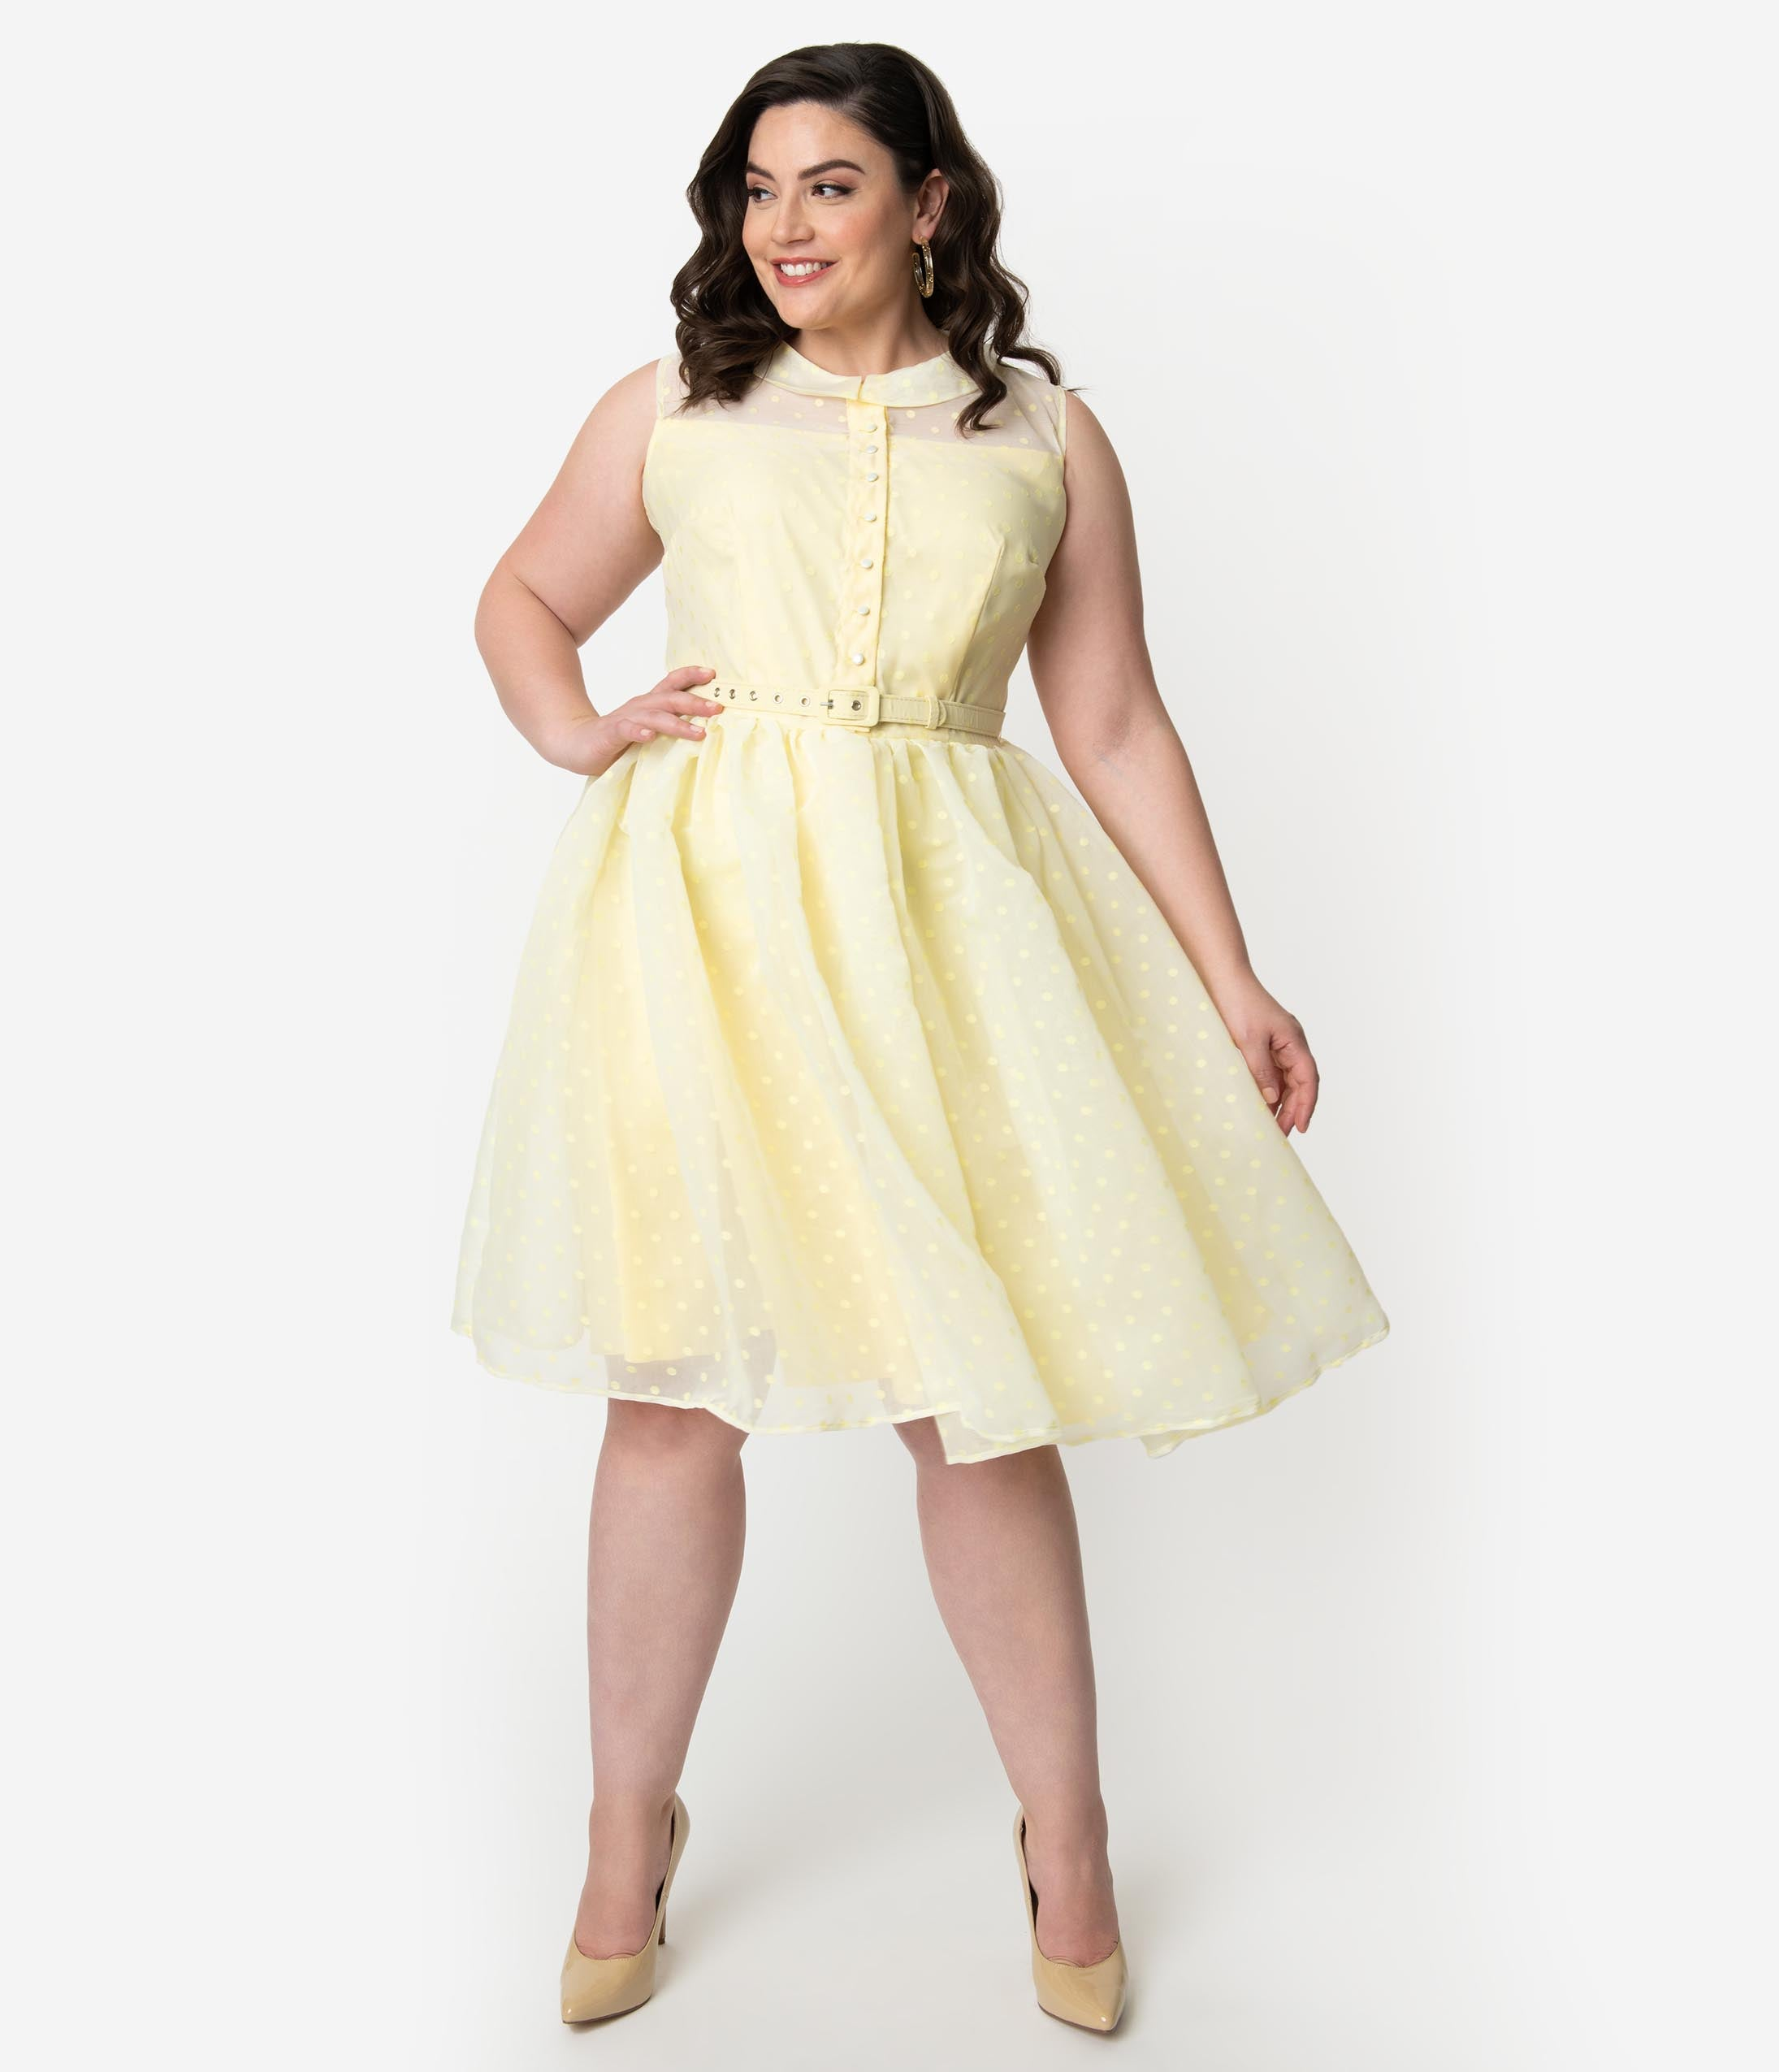 ffb670a8d4f Unique Vintage Plus Size 1950s Style Yellow Swiss Dotted Sleeveless Georgia  Swing Dress